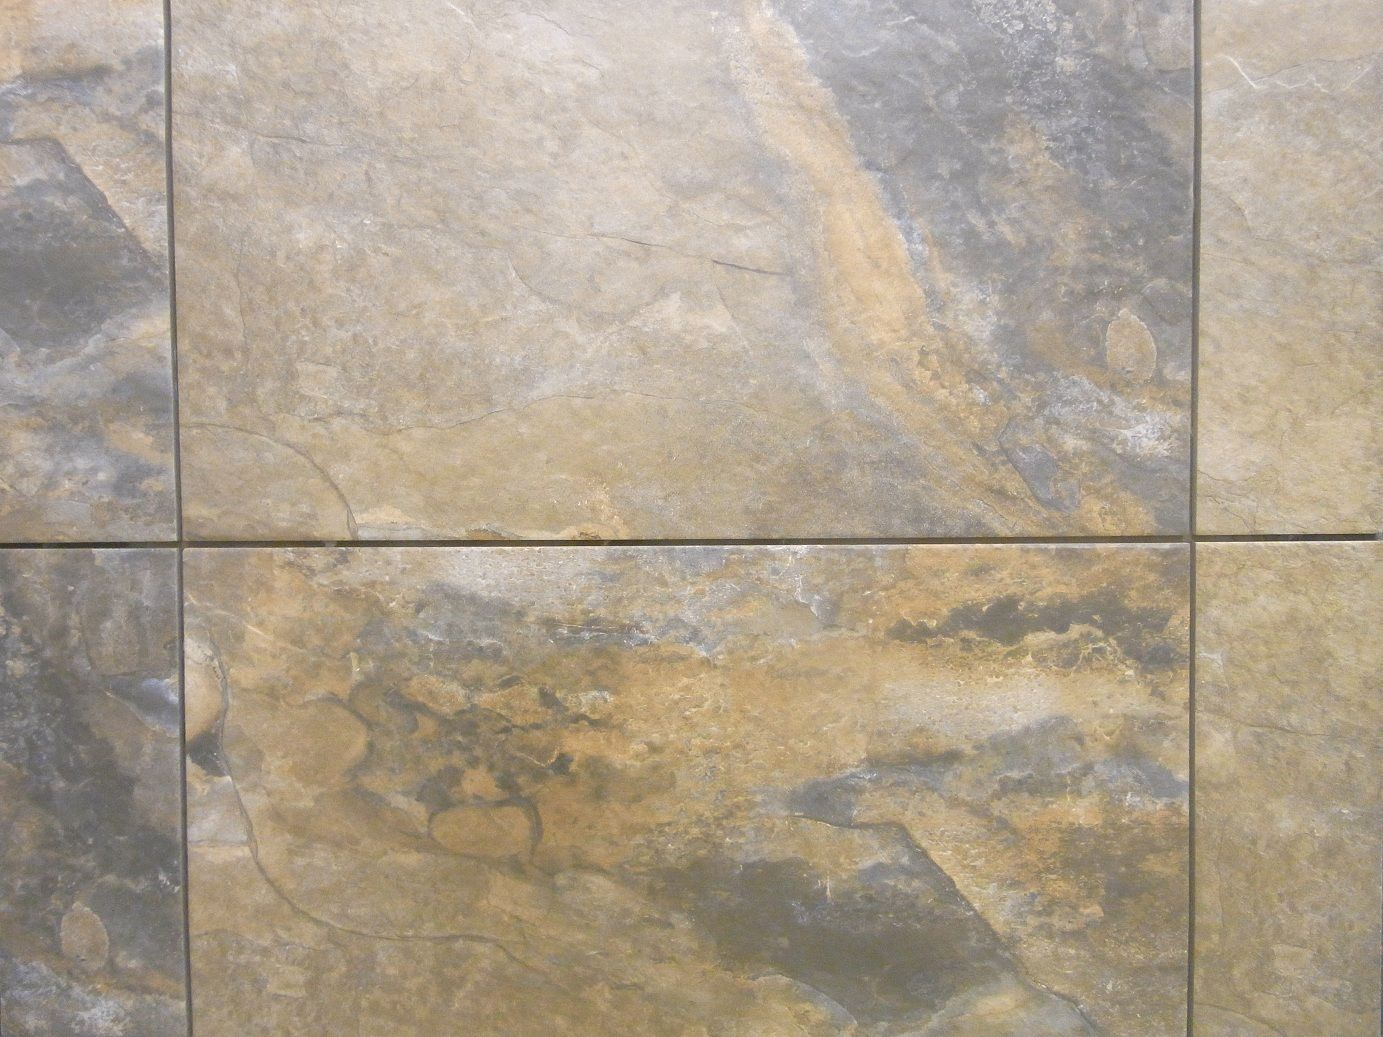 New york slate effect porcelain floor tile deal 60 x 40 inc new york slate effect porcelain floor tile deal 60 x 40 inc adhesive and grout dailygadgetfo Gallery